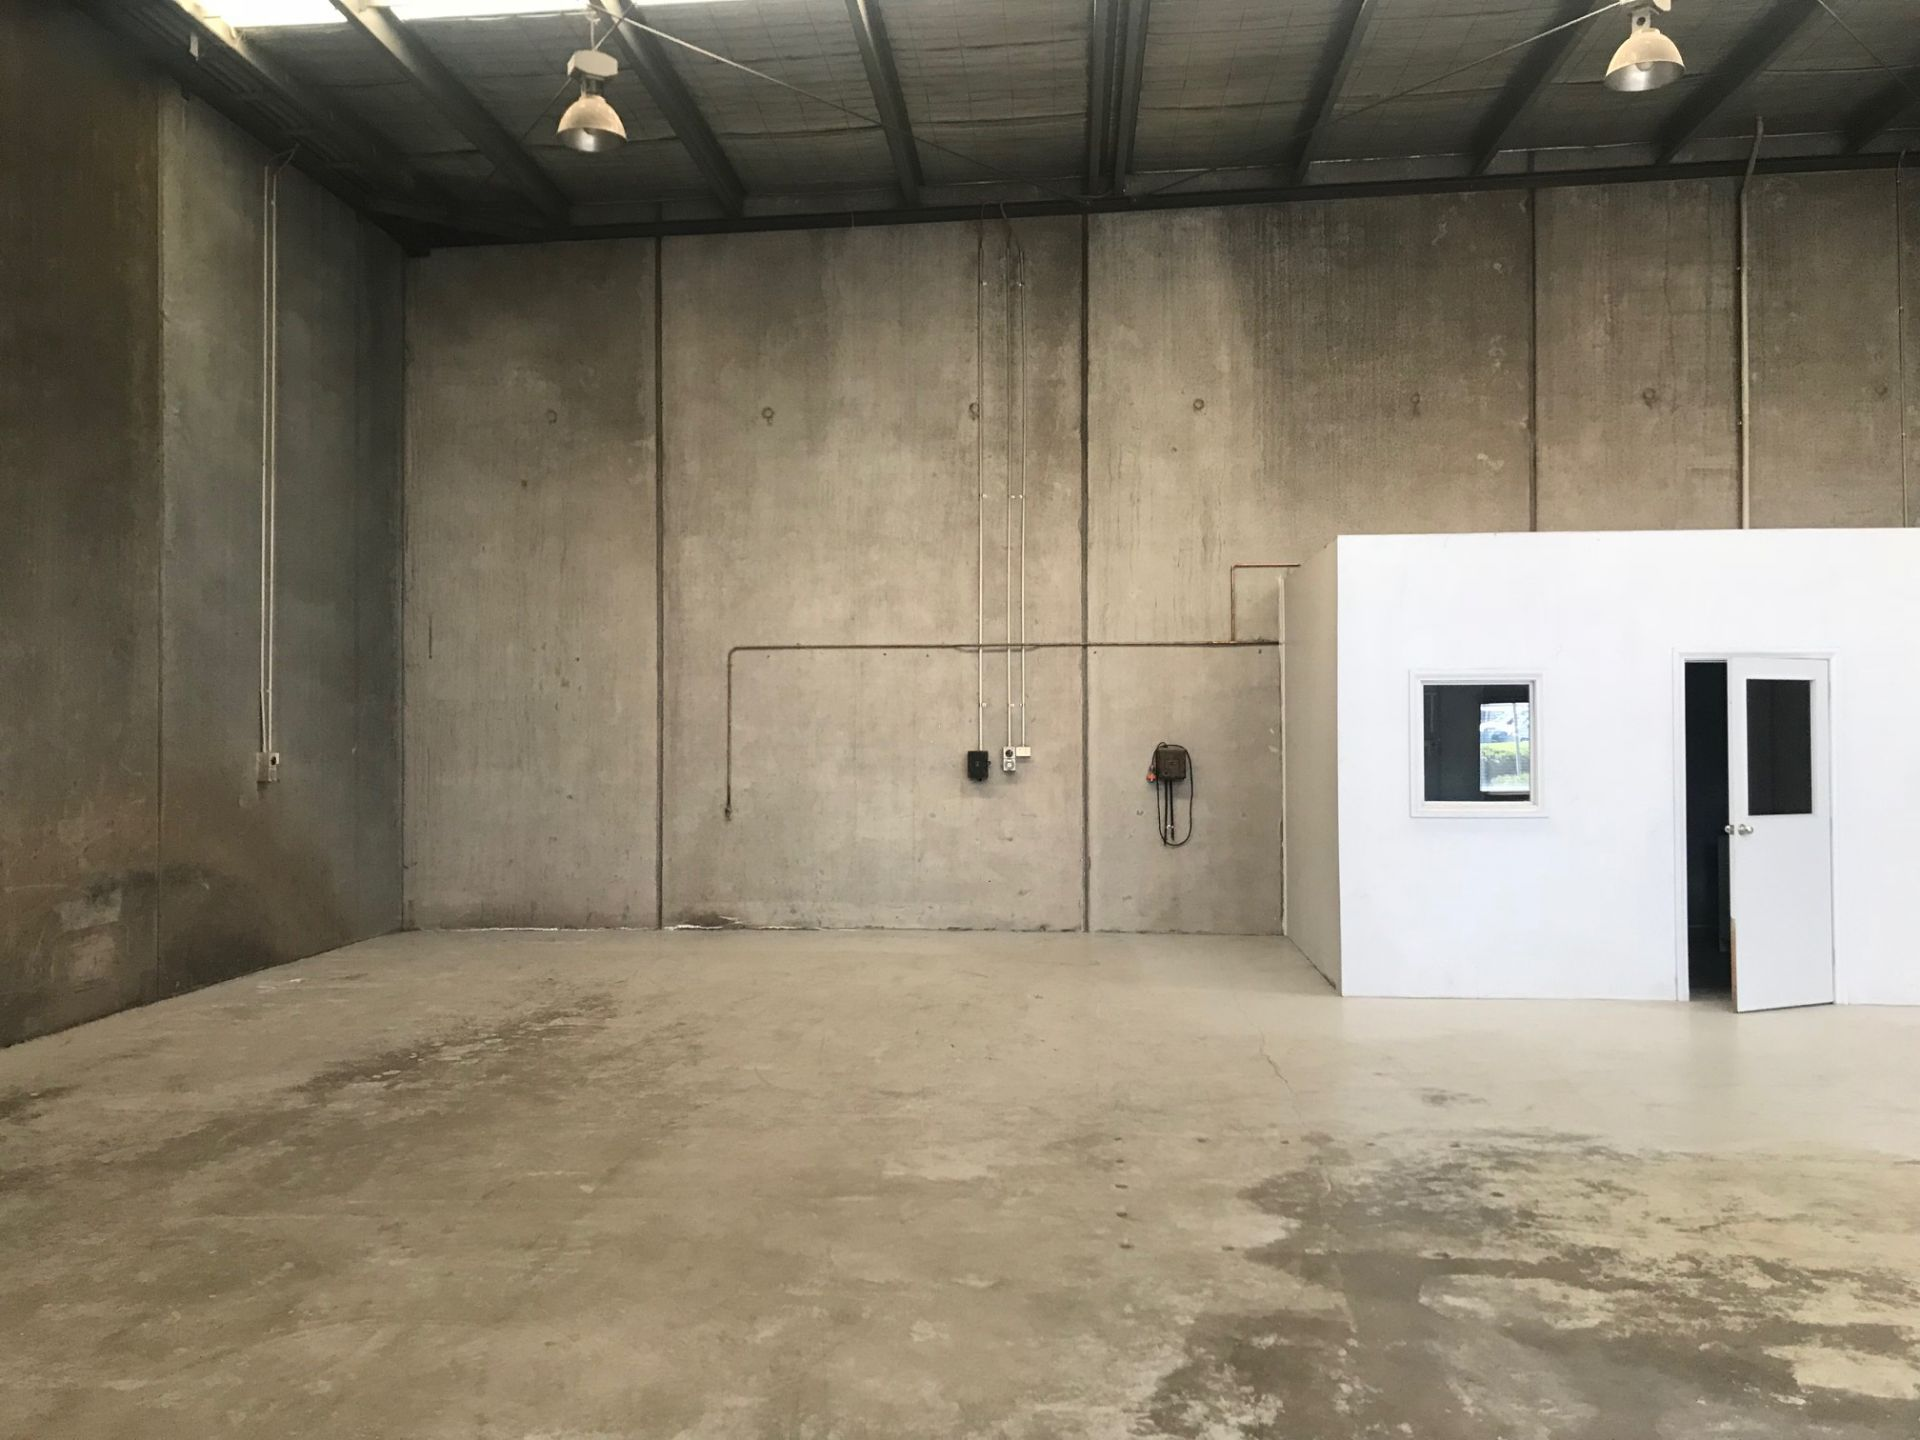 PERFECT STORAGE/STARTER WAREHOUSE - Highly Sought After Location!